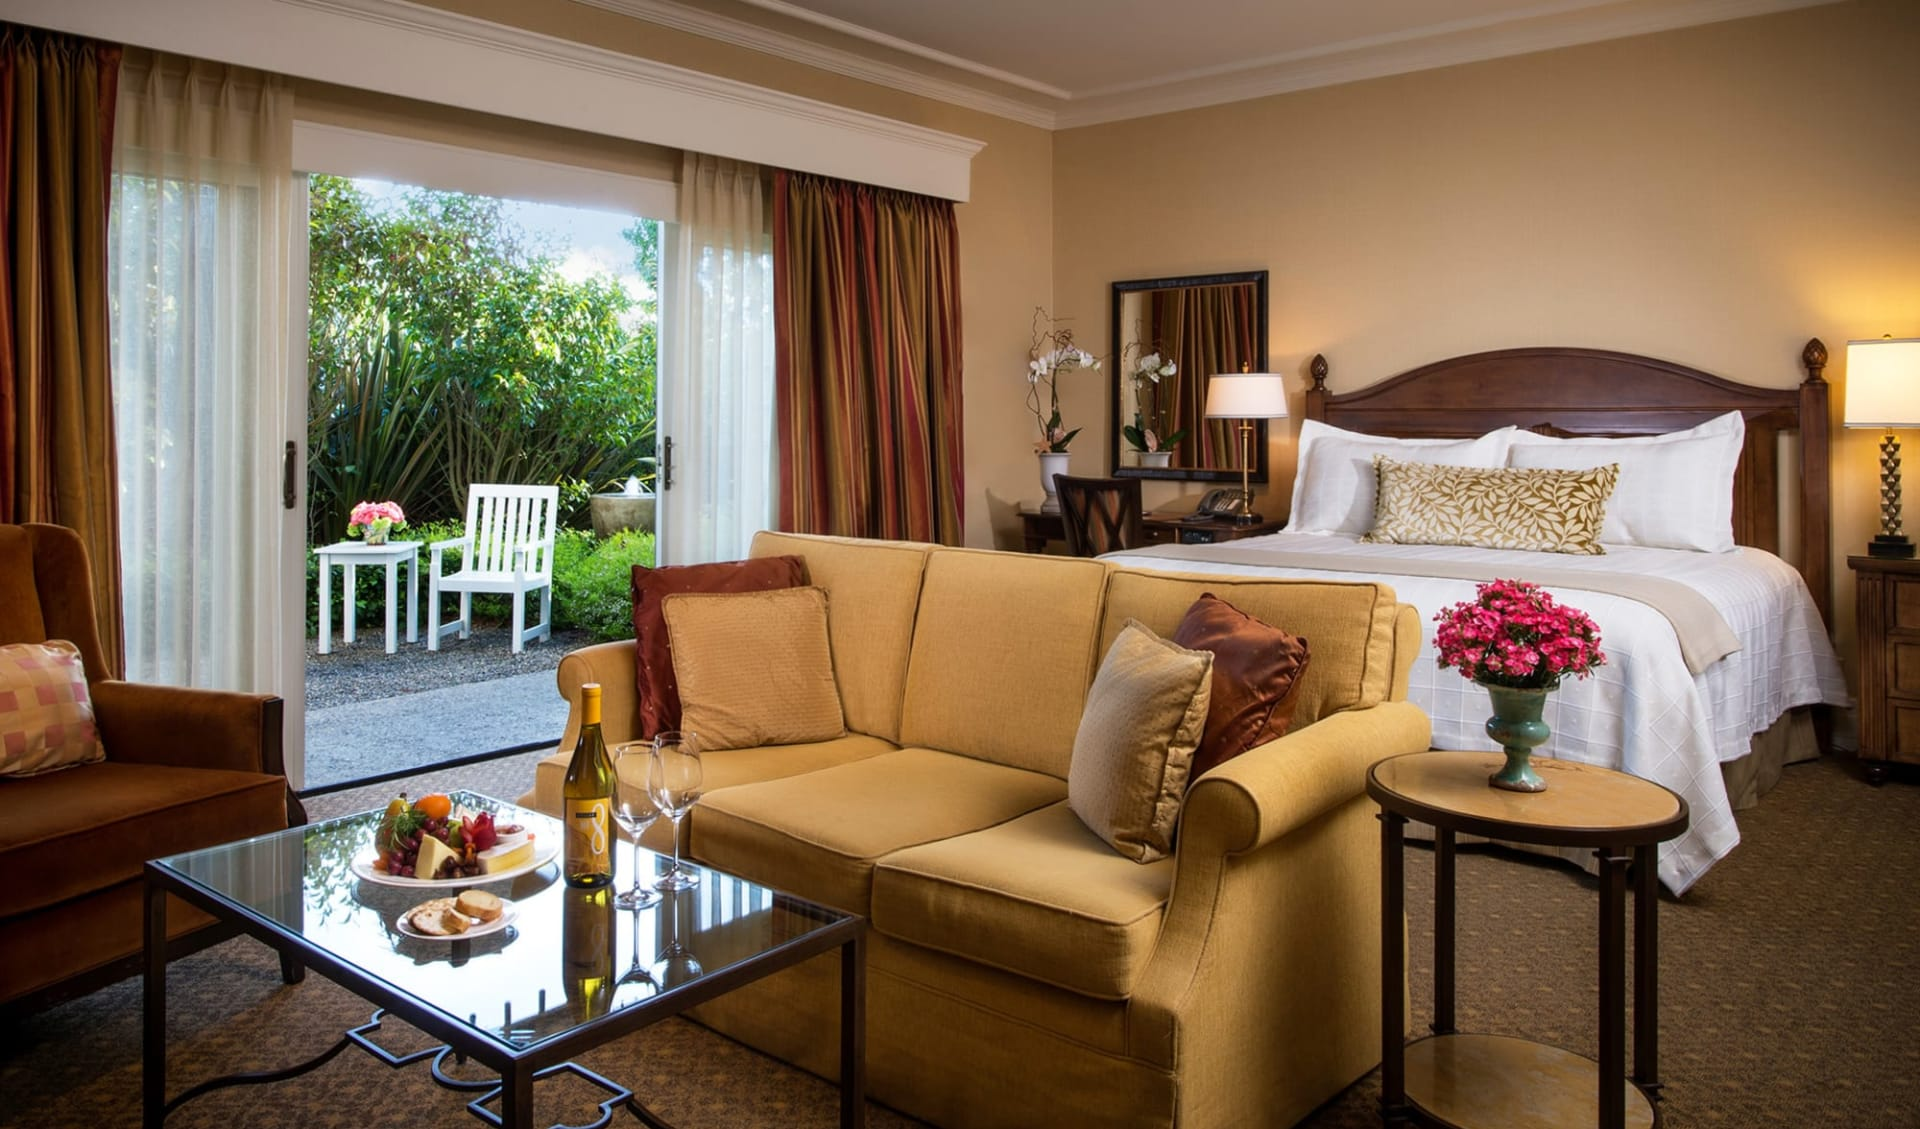 The Lodge at Pebble Beach in Monterey:  Pebble Beach Resort - The Lodge - Garden View Room